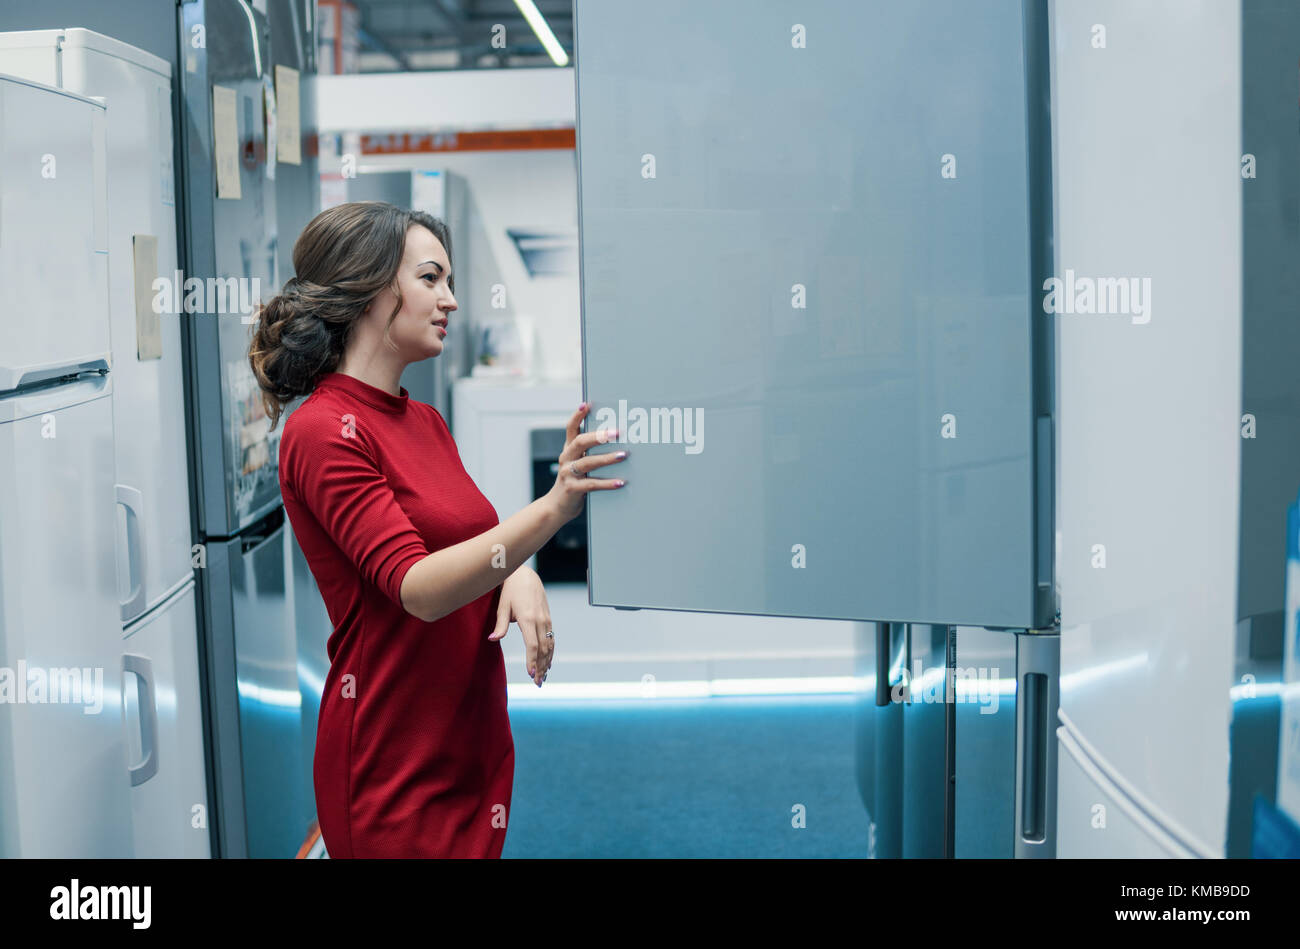 customer choosing large fridges in domestic appliances section - Stock Image